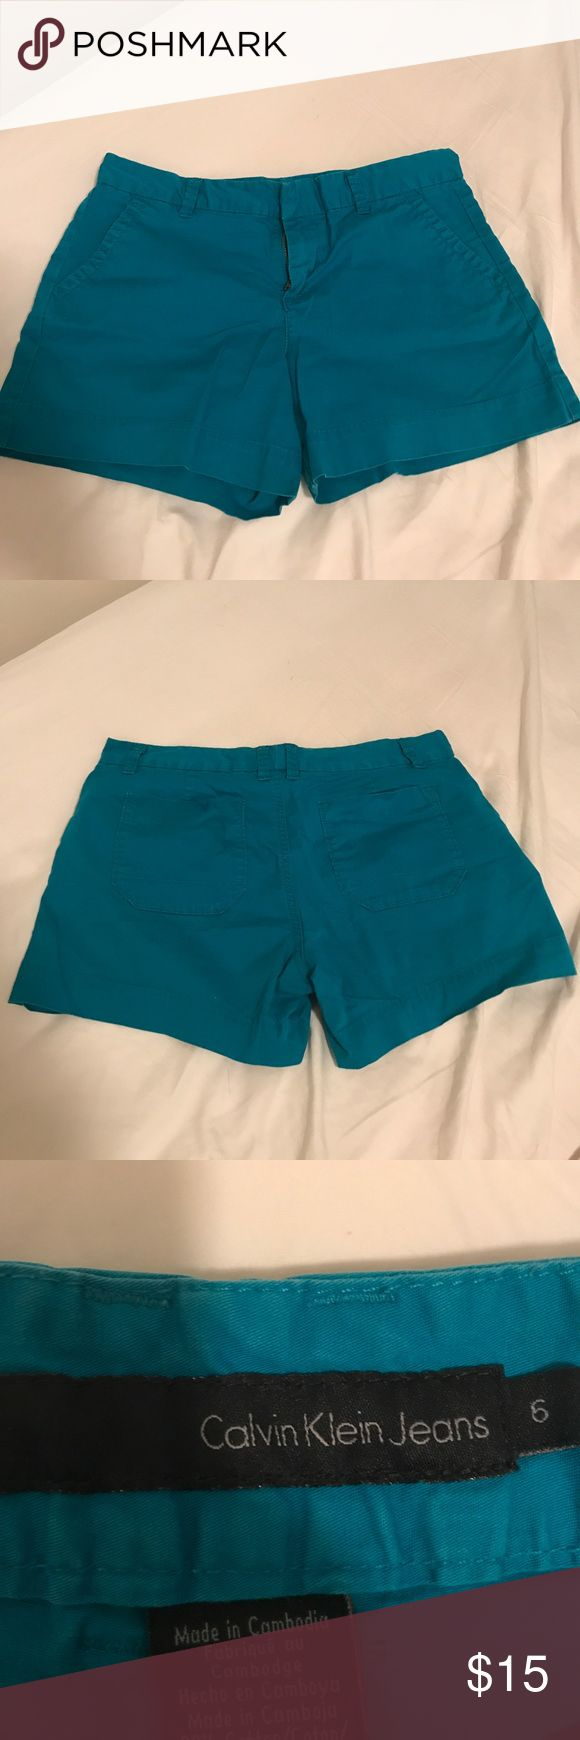 Calvin Klein teal shorts Teal trouser style Calvin Klein shorts with 3 inch inseam.  They have been worn a few times and show some minor fading around the edges but otherwise are in good condition. Calvin Klein Jeans Shorts